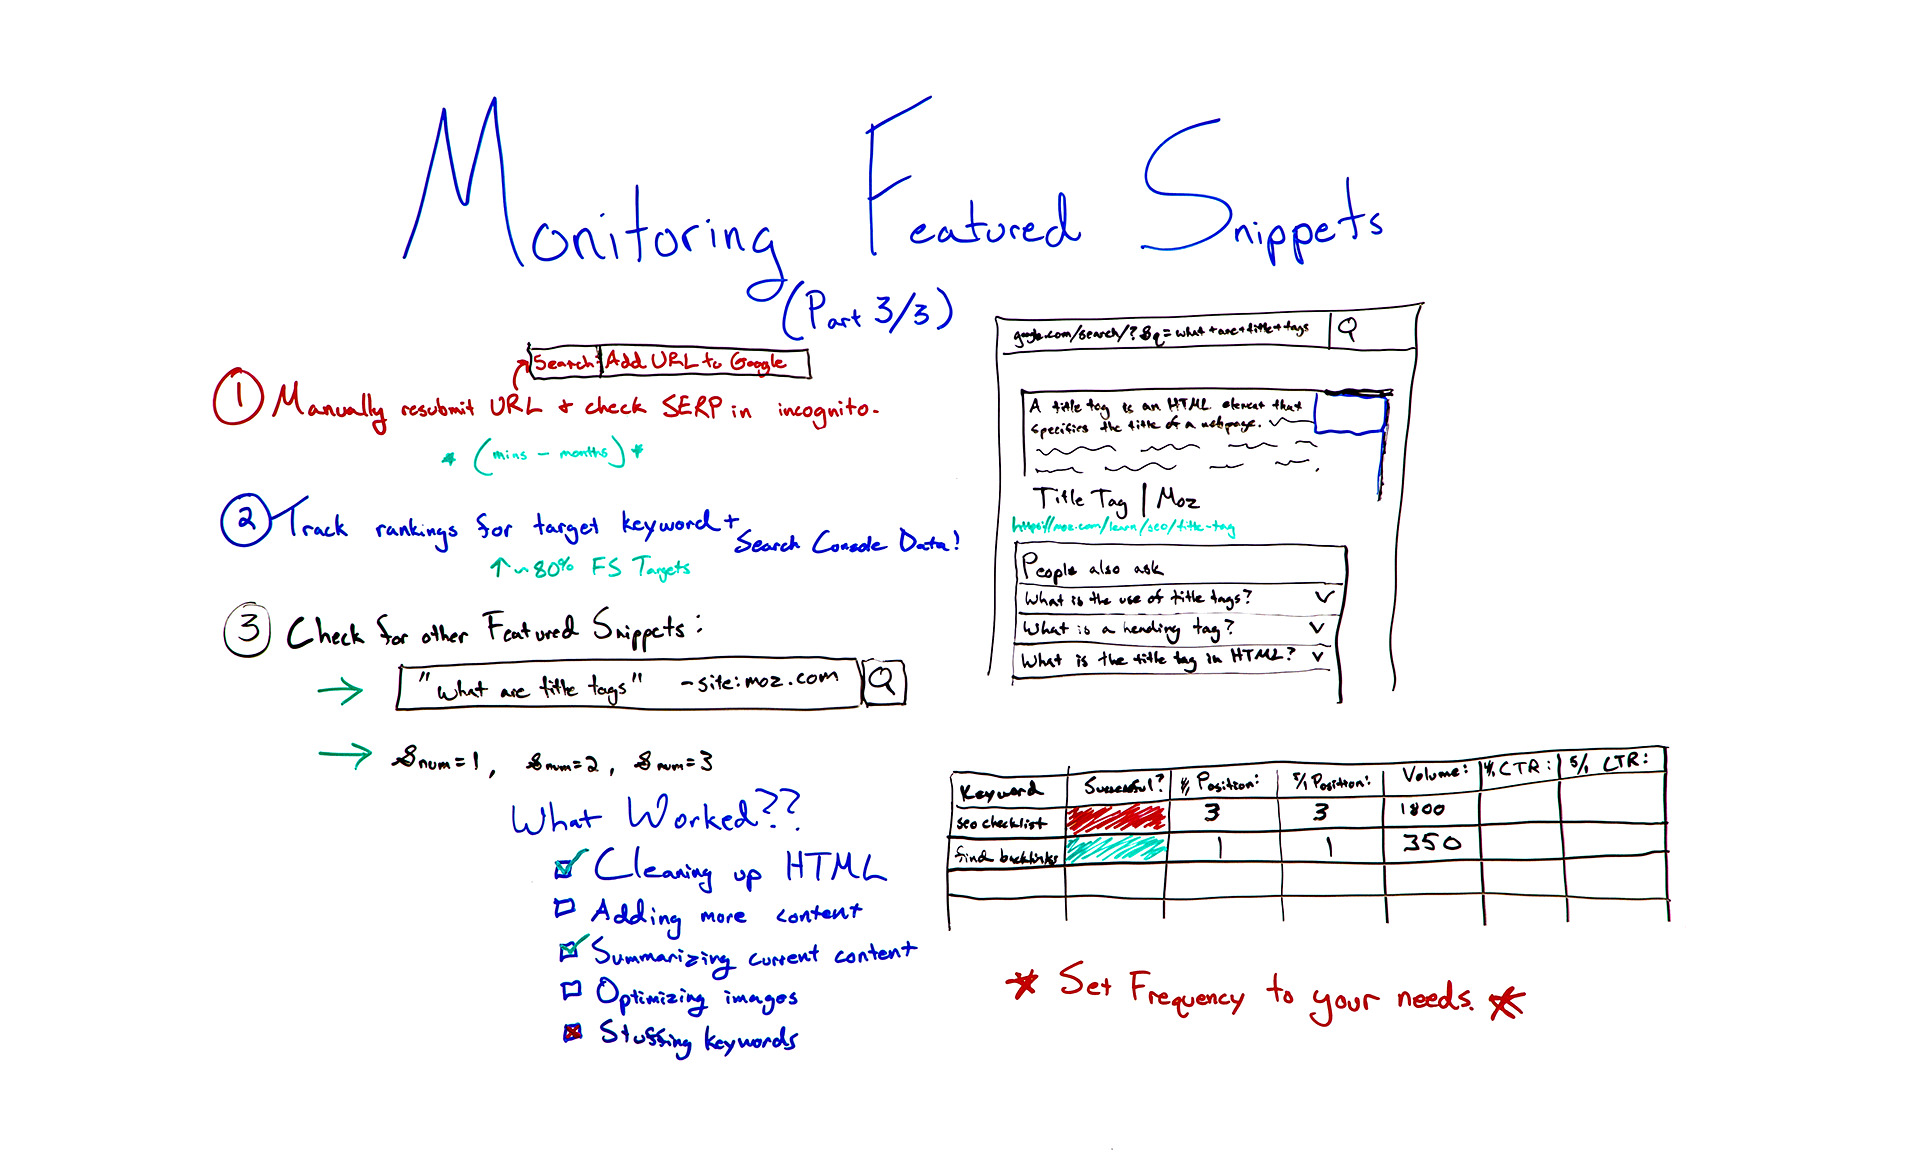 Monitoring featured snippets